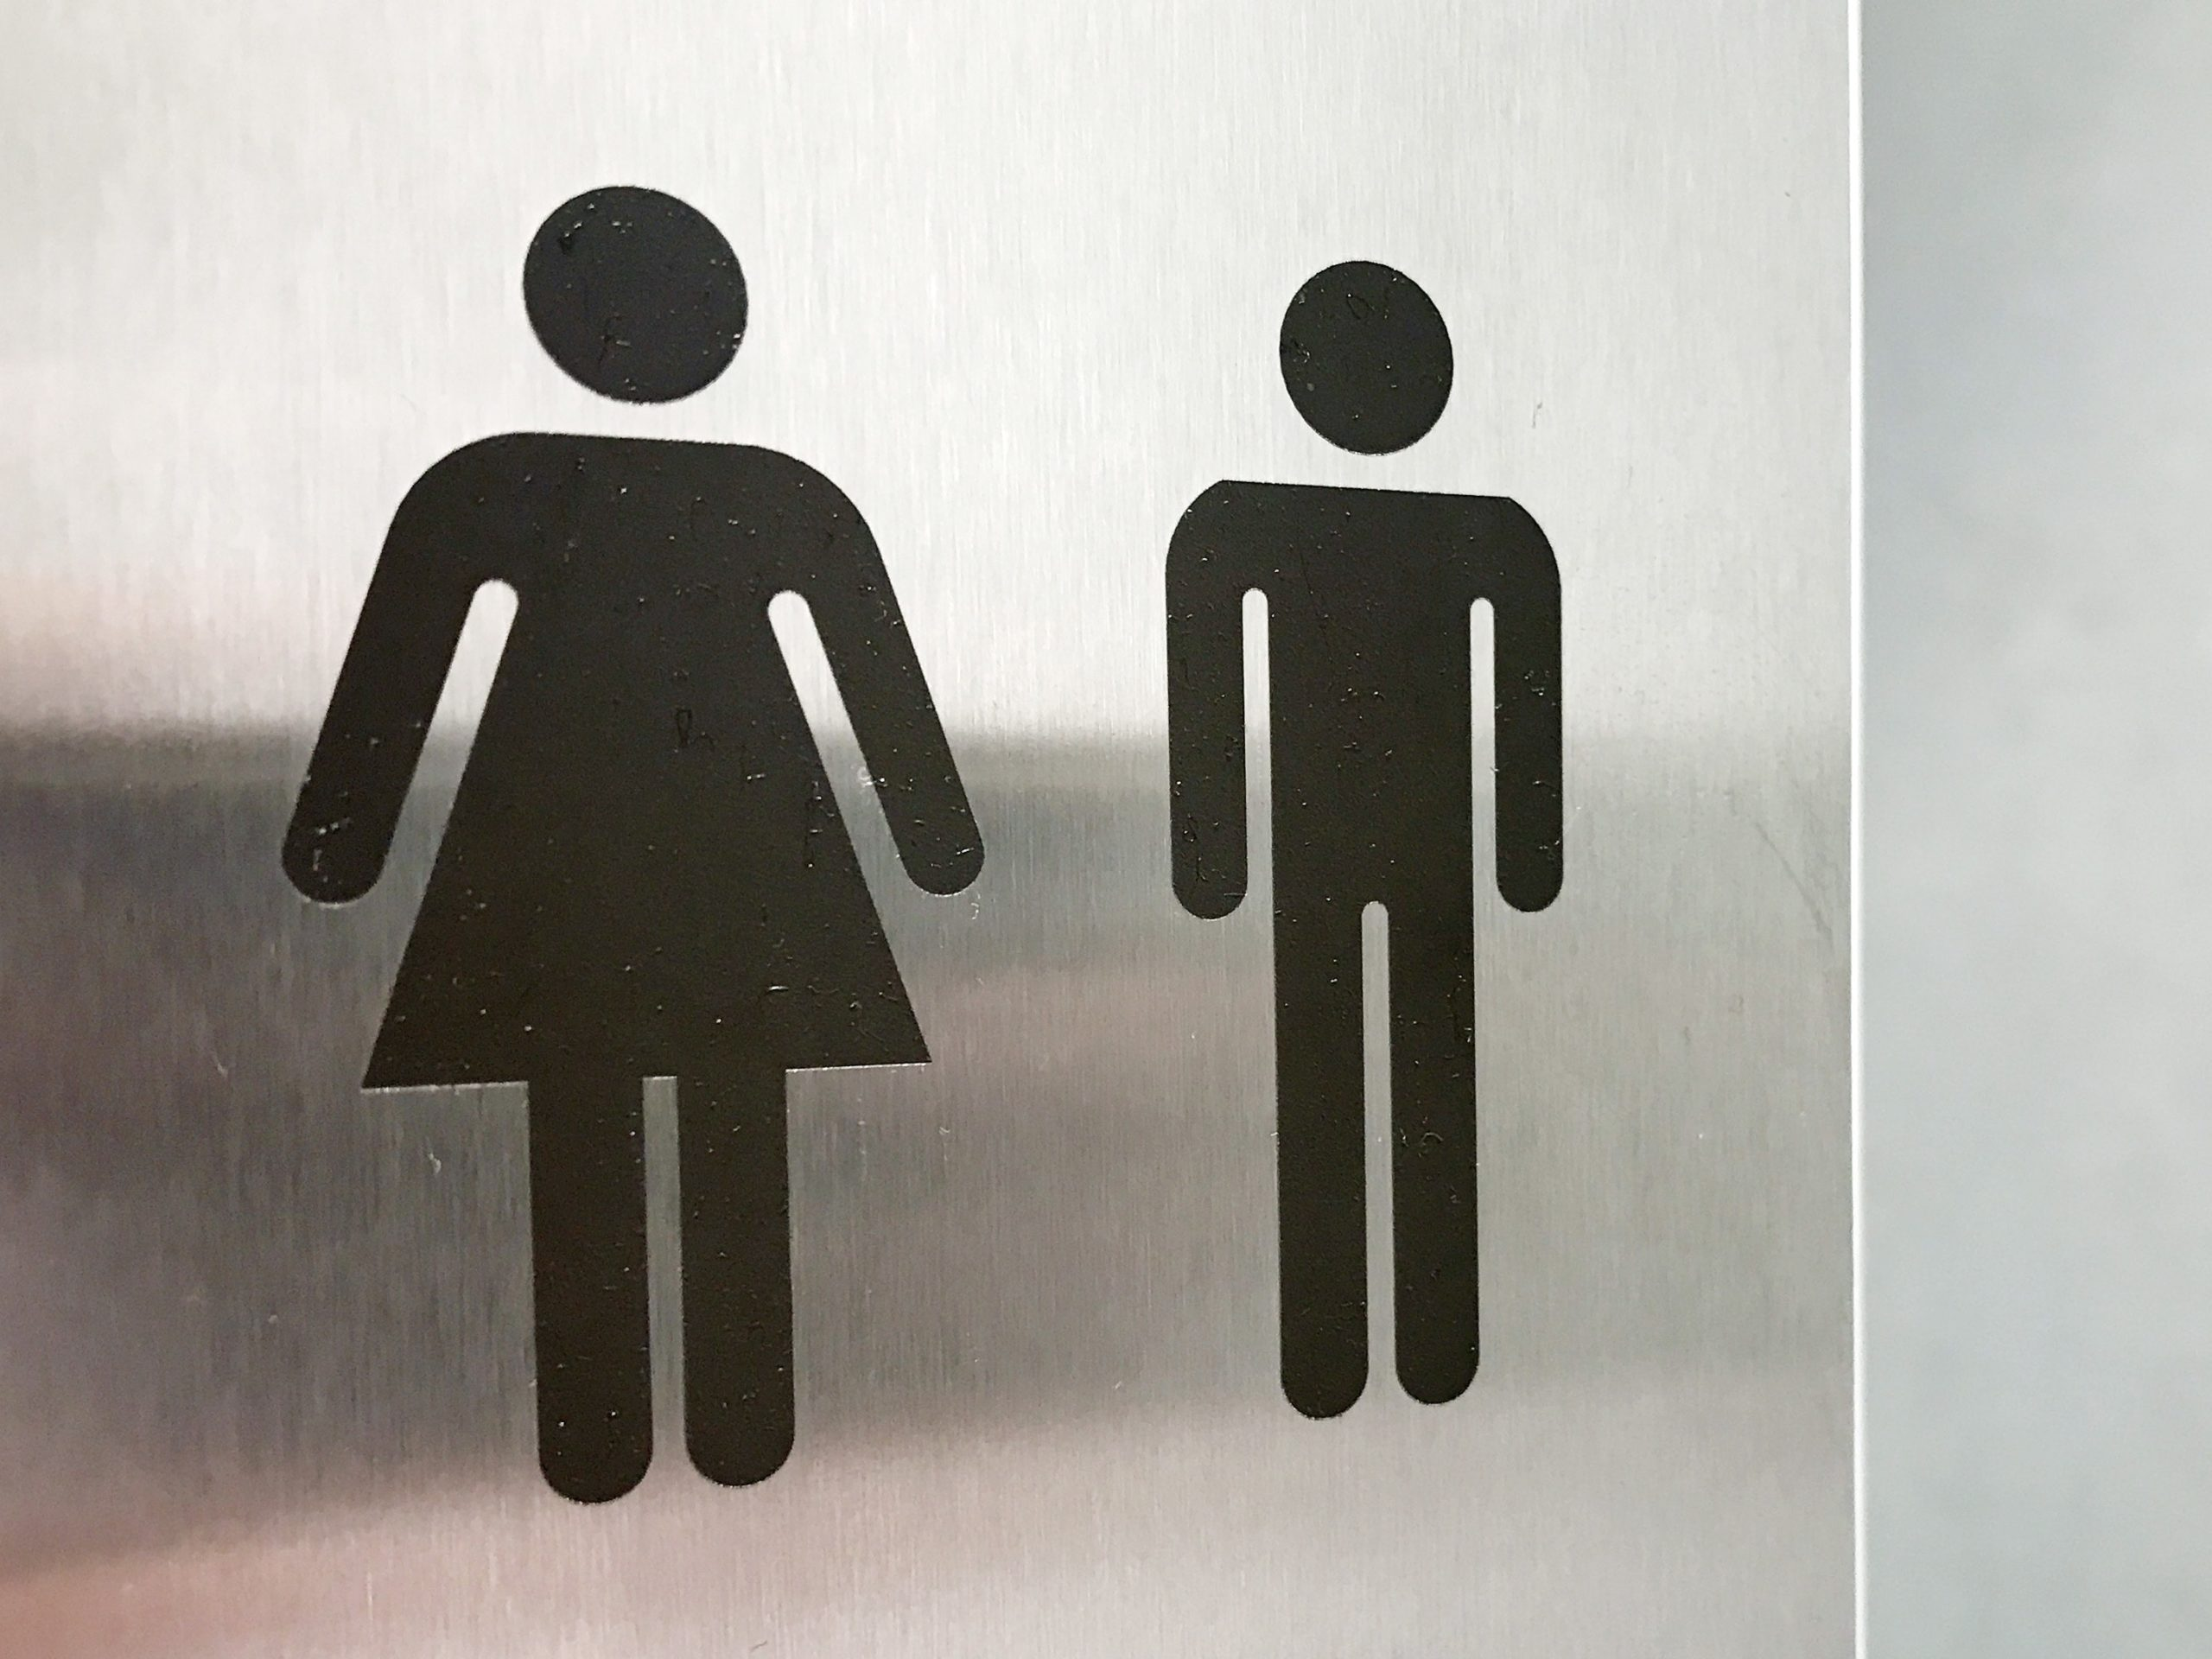 New 'smart toilet' technology can look for signs of disease, scientists claim